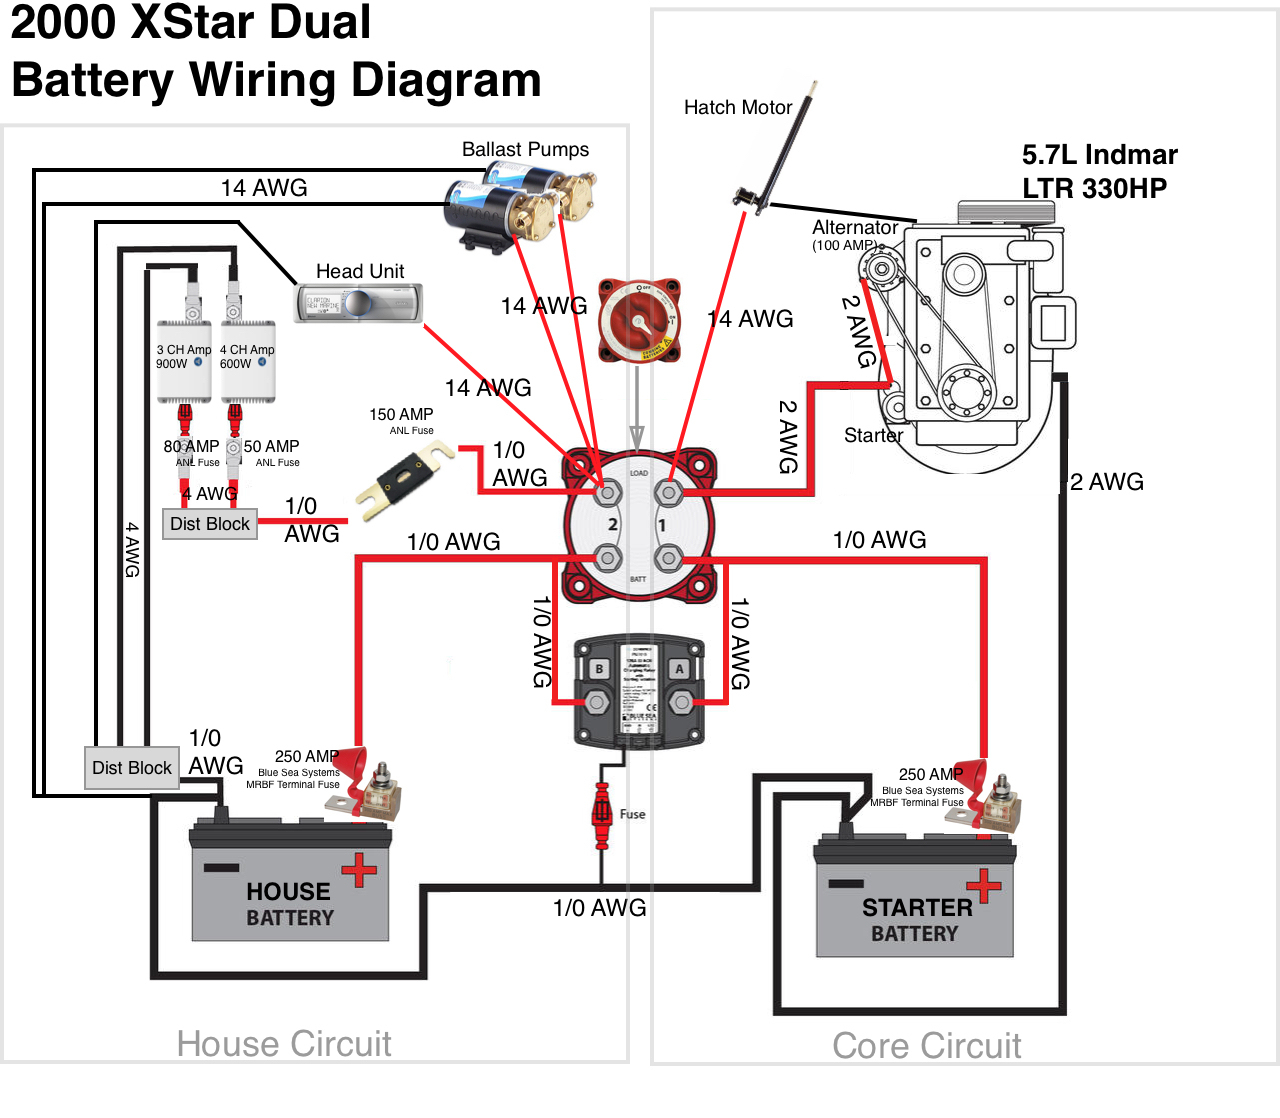 Mastercraft Boat Wiring Diagram - Good Place To Get Wiring Diagram • - Mastercraft Trailer Wiring Diagram